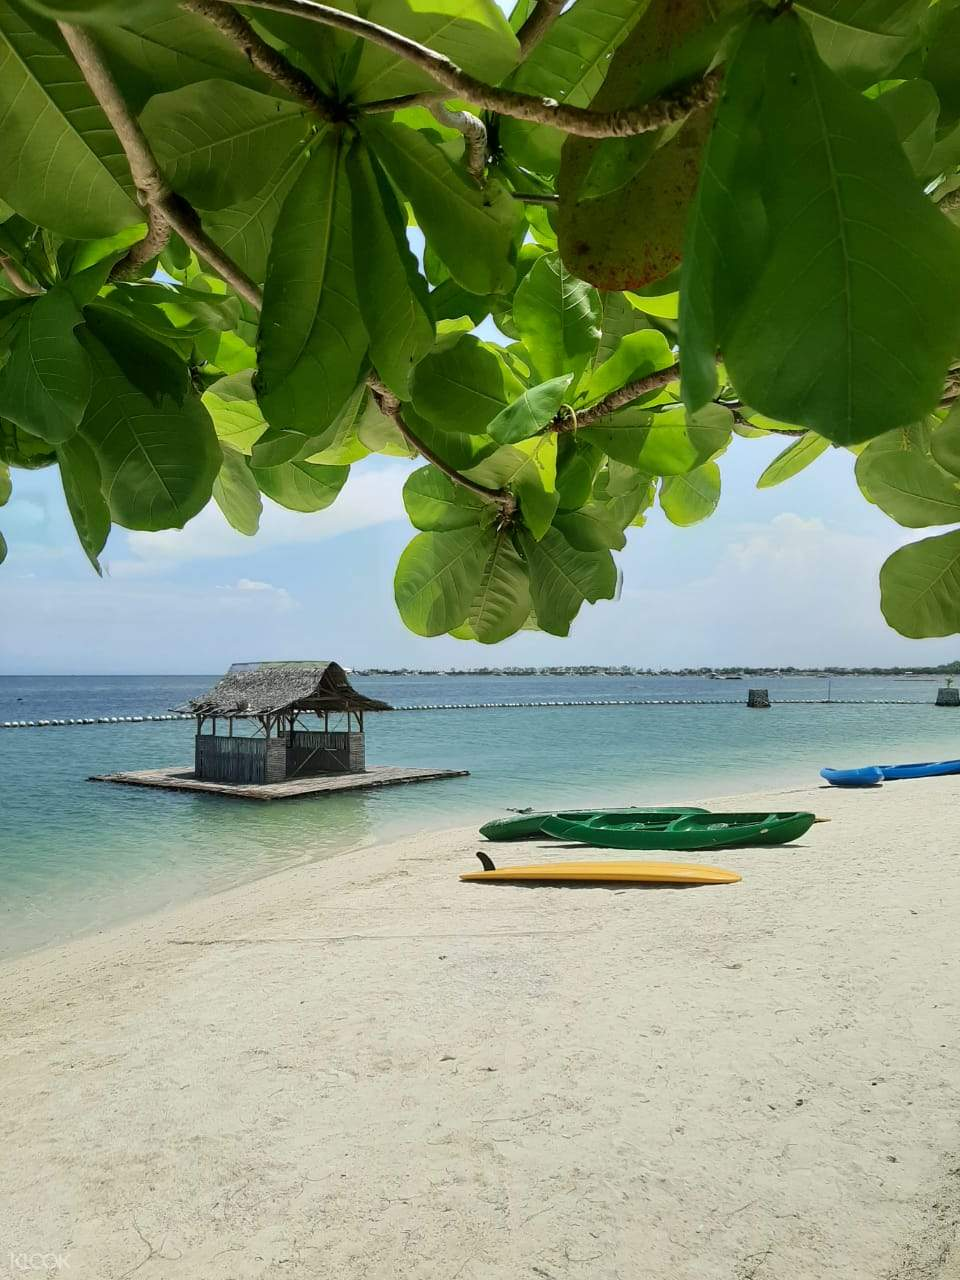 Solea Mactan's beachfront area with paddle boats and a surfboard